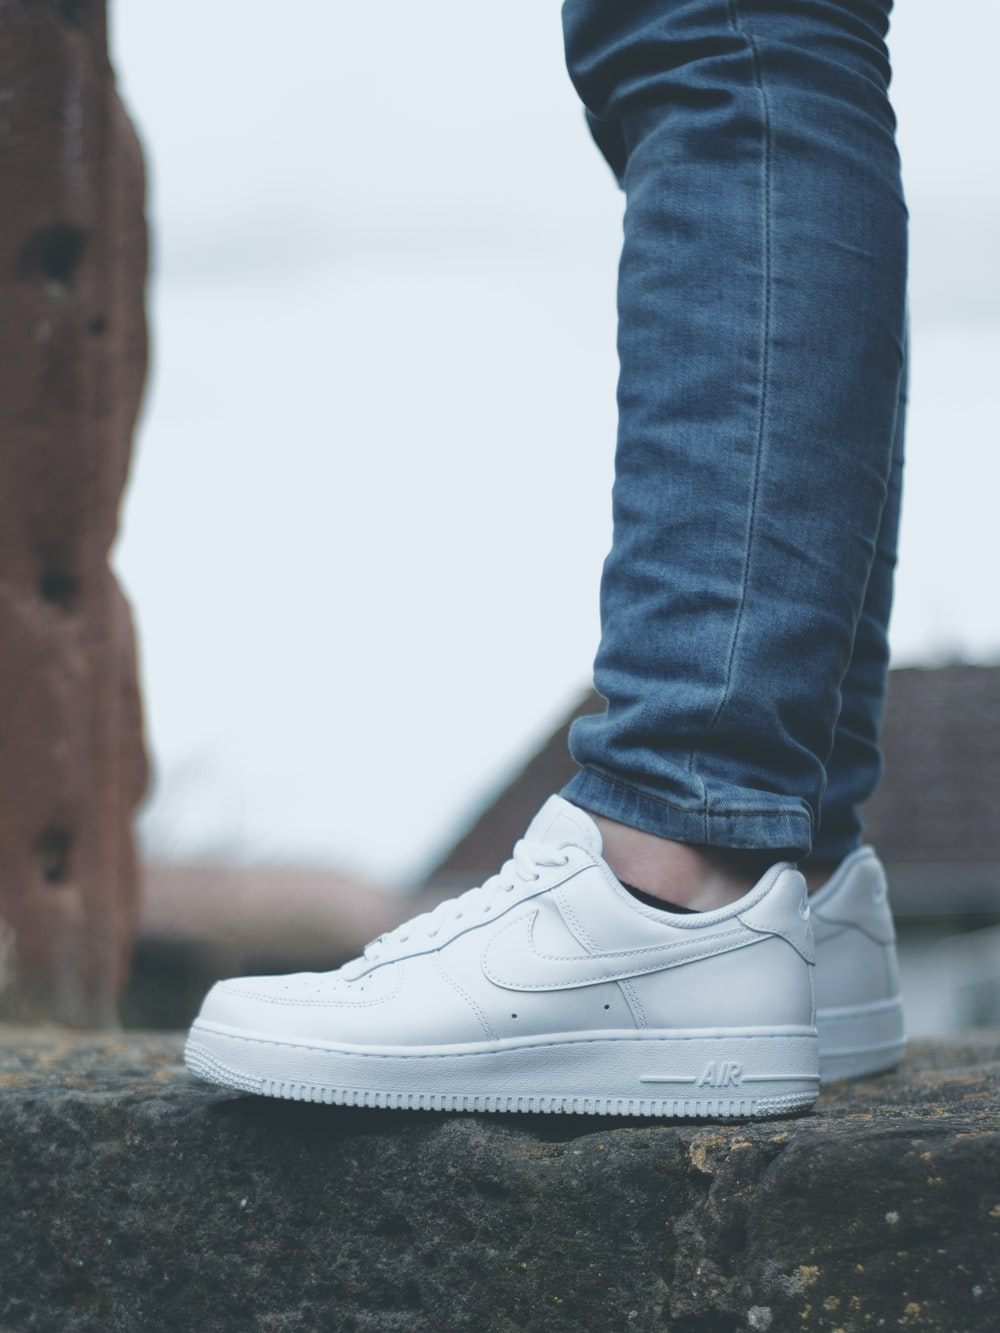 Nike Air Force 1 Pictures   Download Free Images on Unsplash